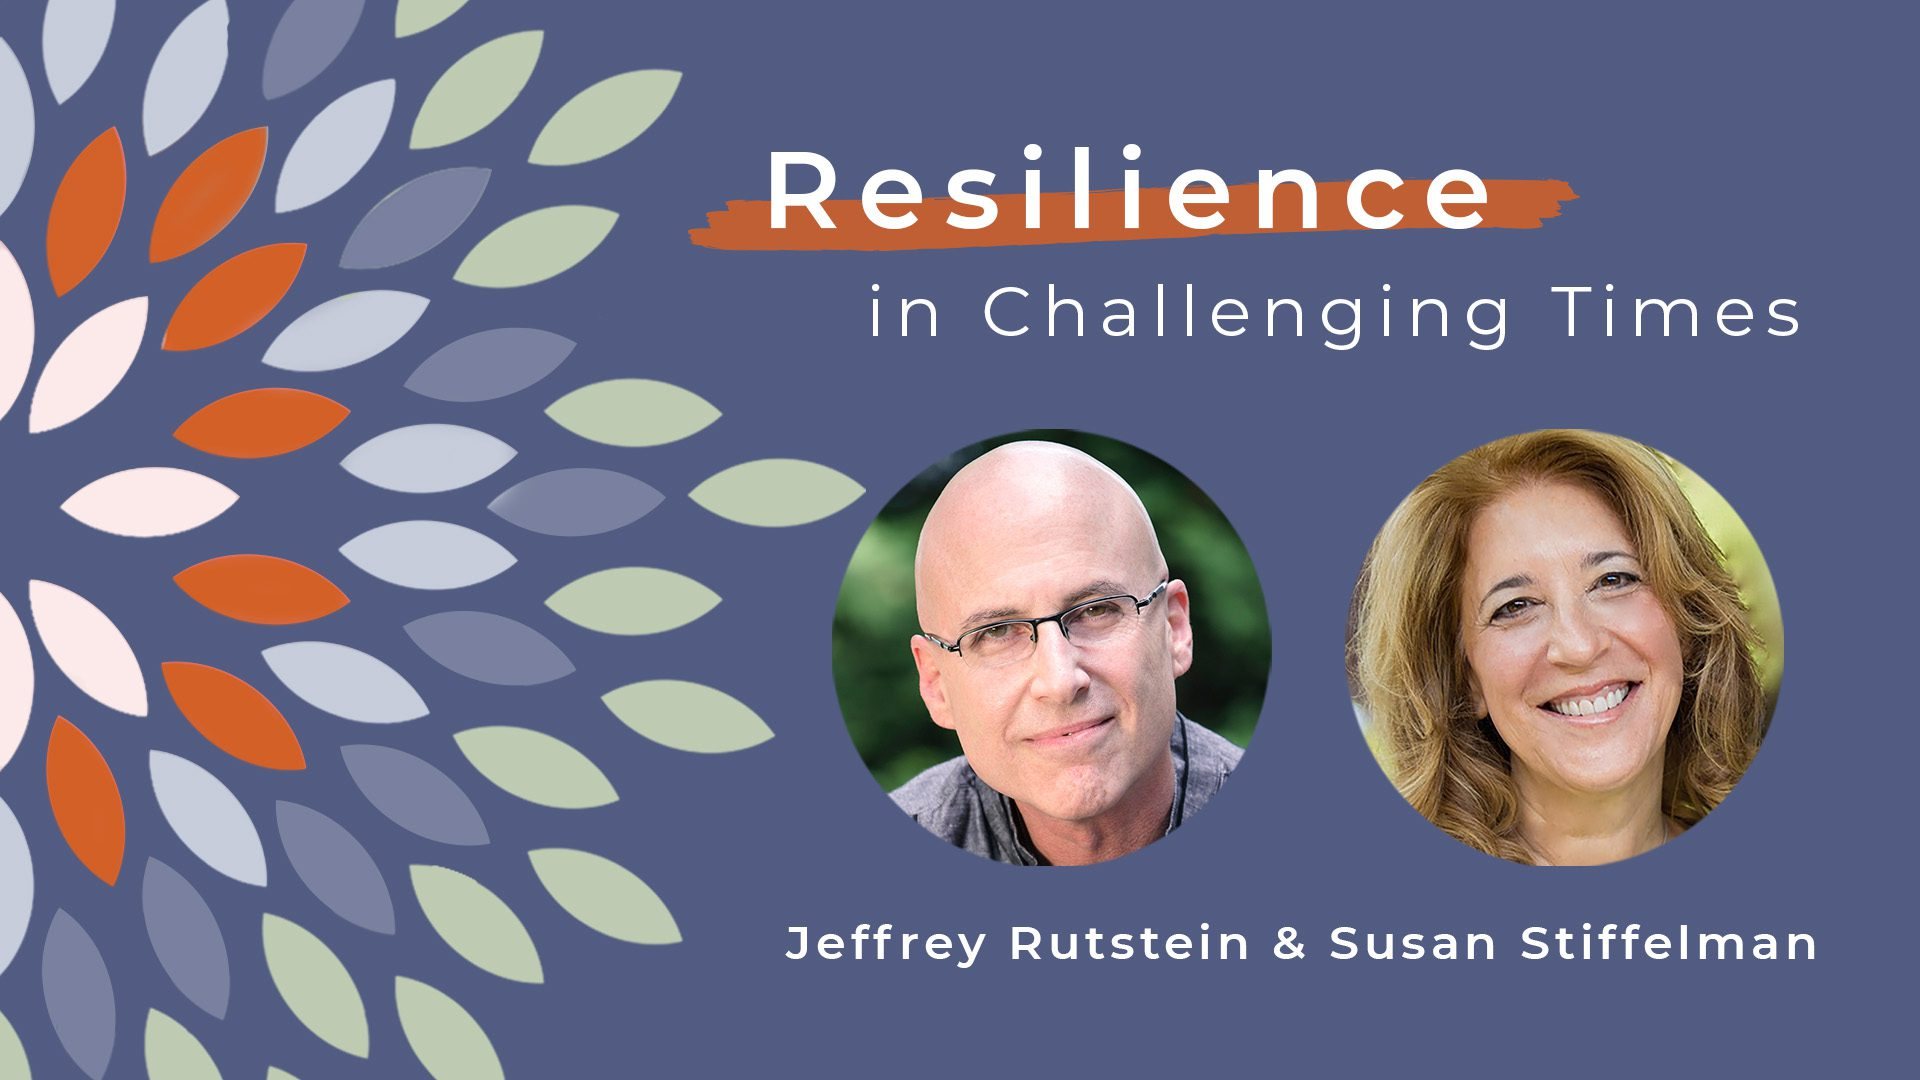 Resiliece-video-rutstein-stiffelman-title-card-title-card